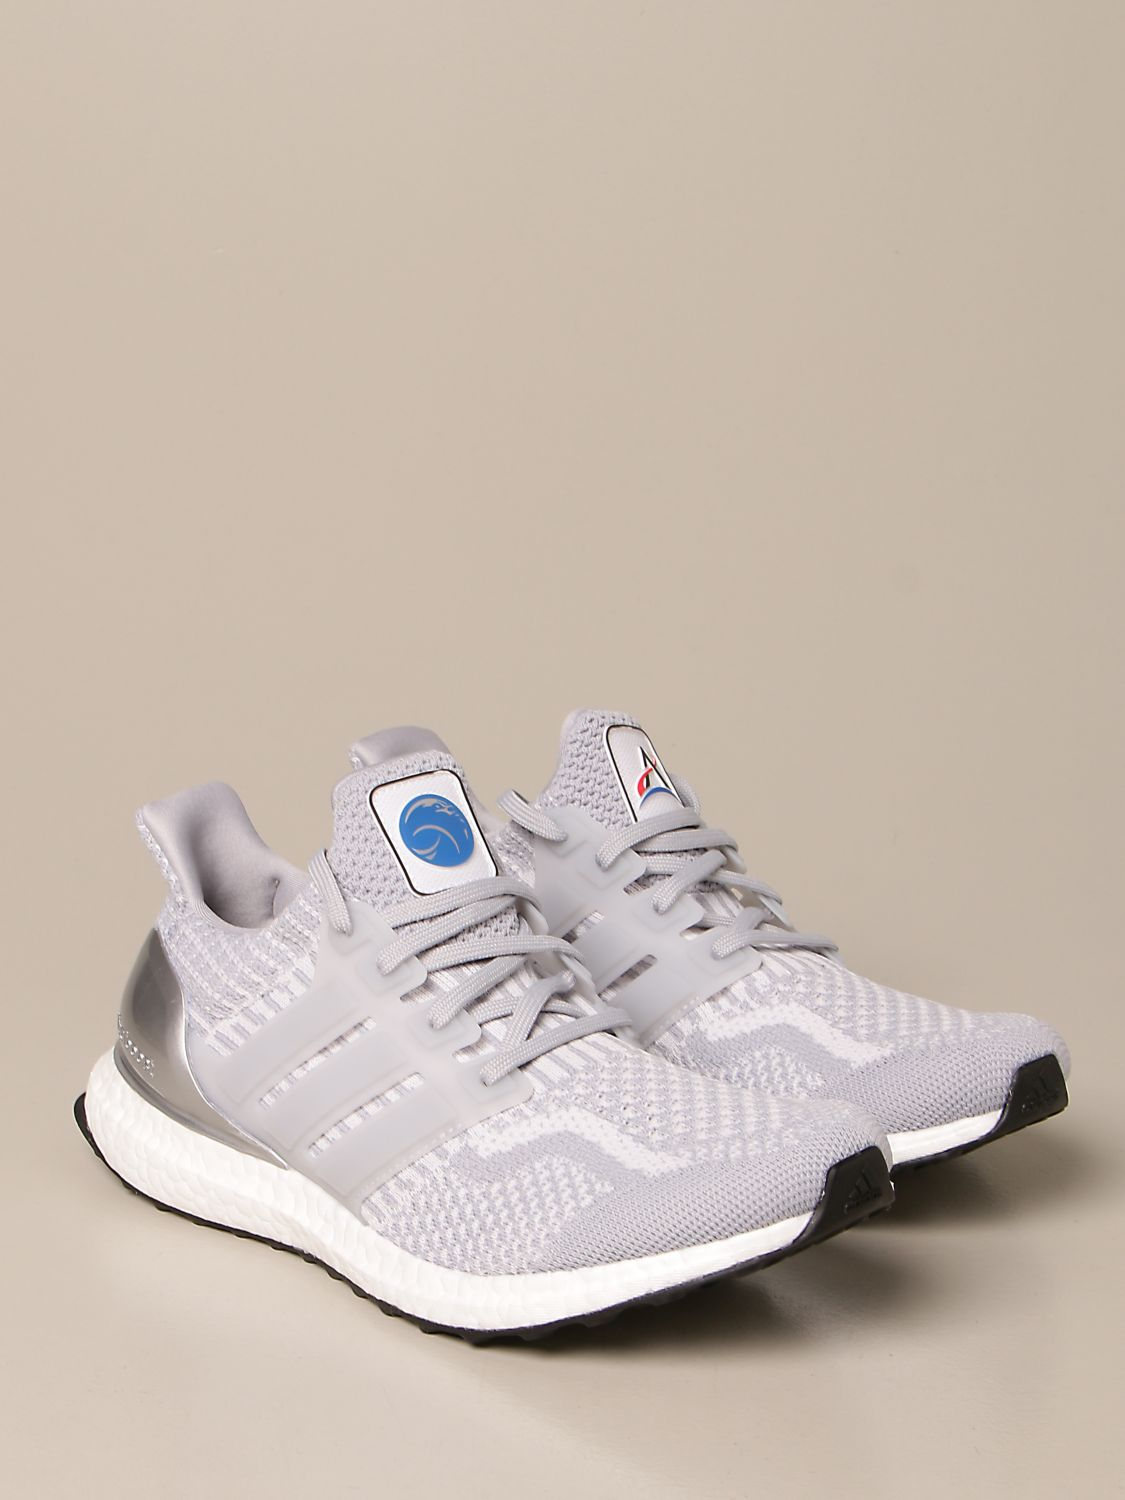 Trainers Adidas Originals: Ultraboost Adidas Originals sneakers in Primeknit grey 2